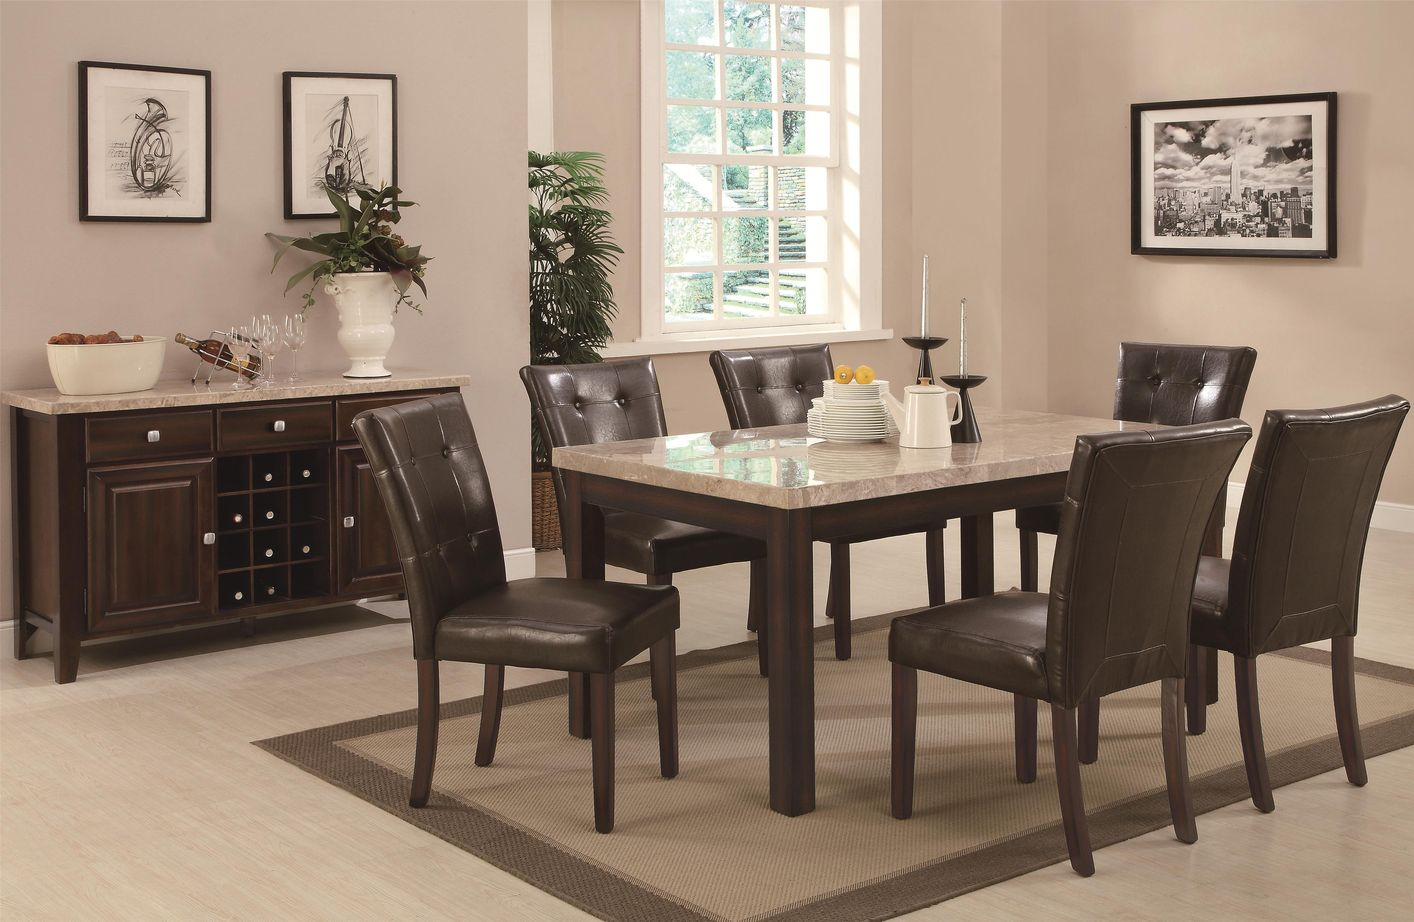 Marvelous photograph of  103771 103772 Brown Wood And Marble Dining Table Set In Los Angeles Ca with #A37428 color and 1414x922 pixels